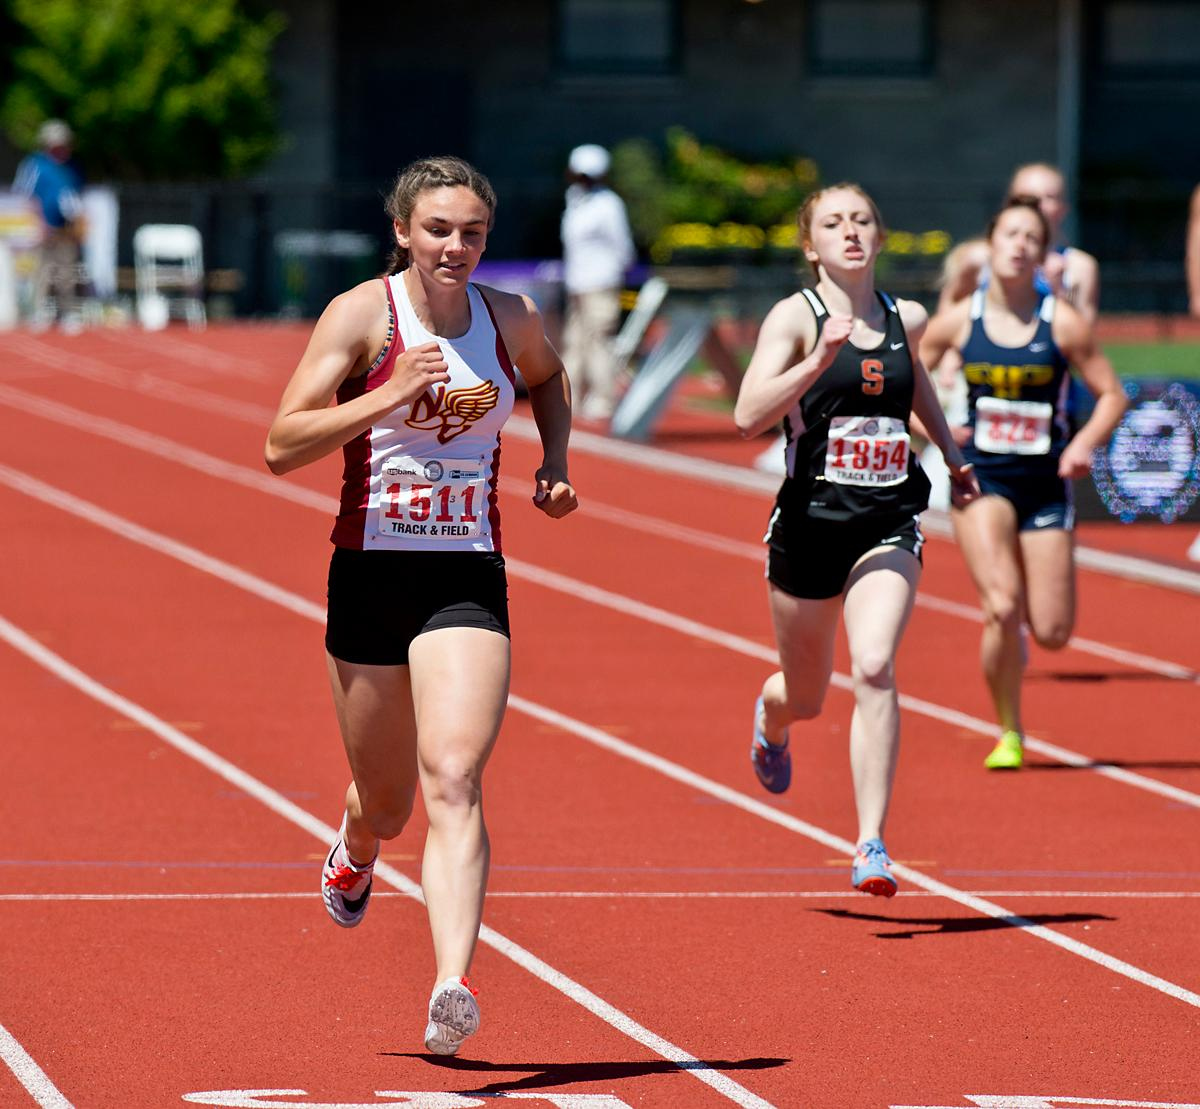 Baylee Touey from North Valley wins the 4A Girls 400 meter dash with a time of 57.47 at the OSAA Track Championship at Hayward Field on Saturday. Photo by Dan Morrison, Oregon News Lab